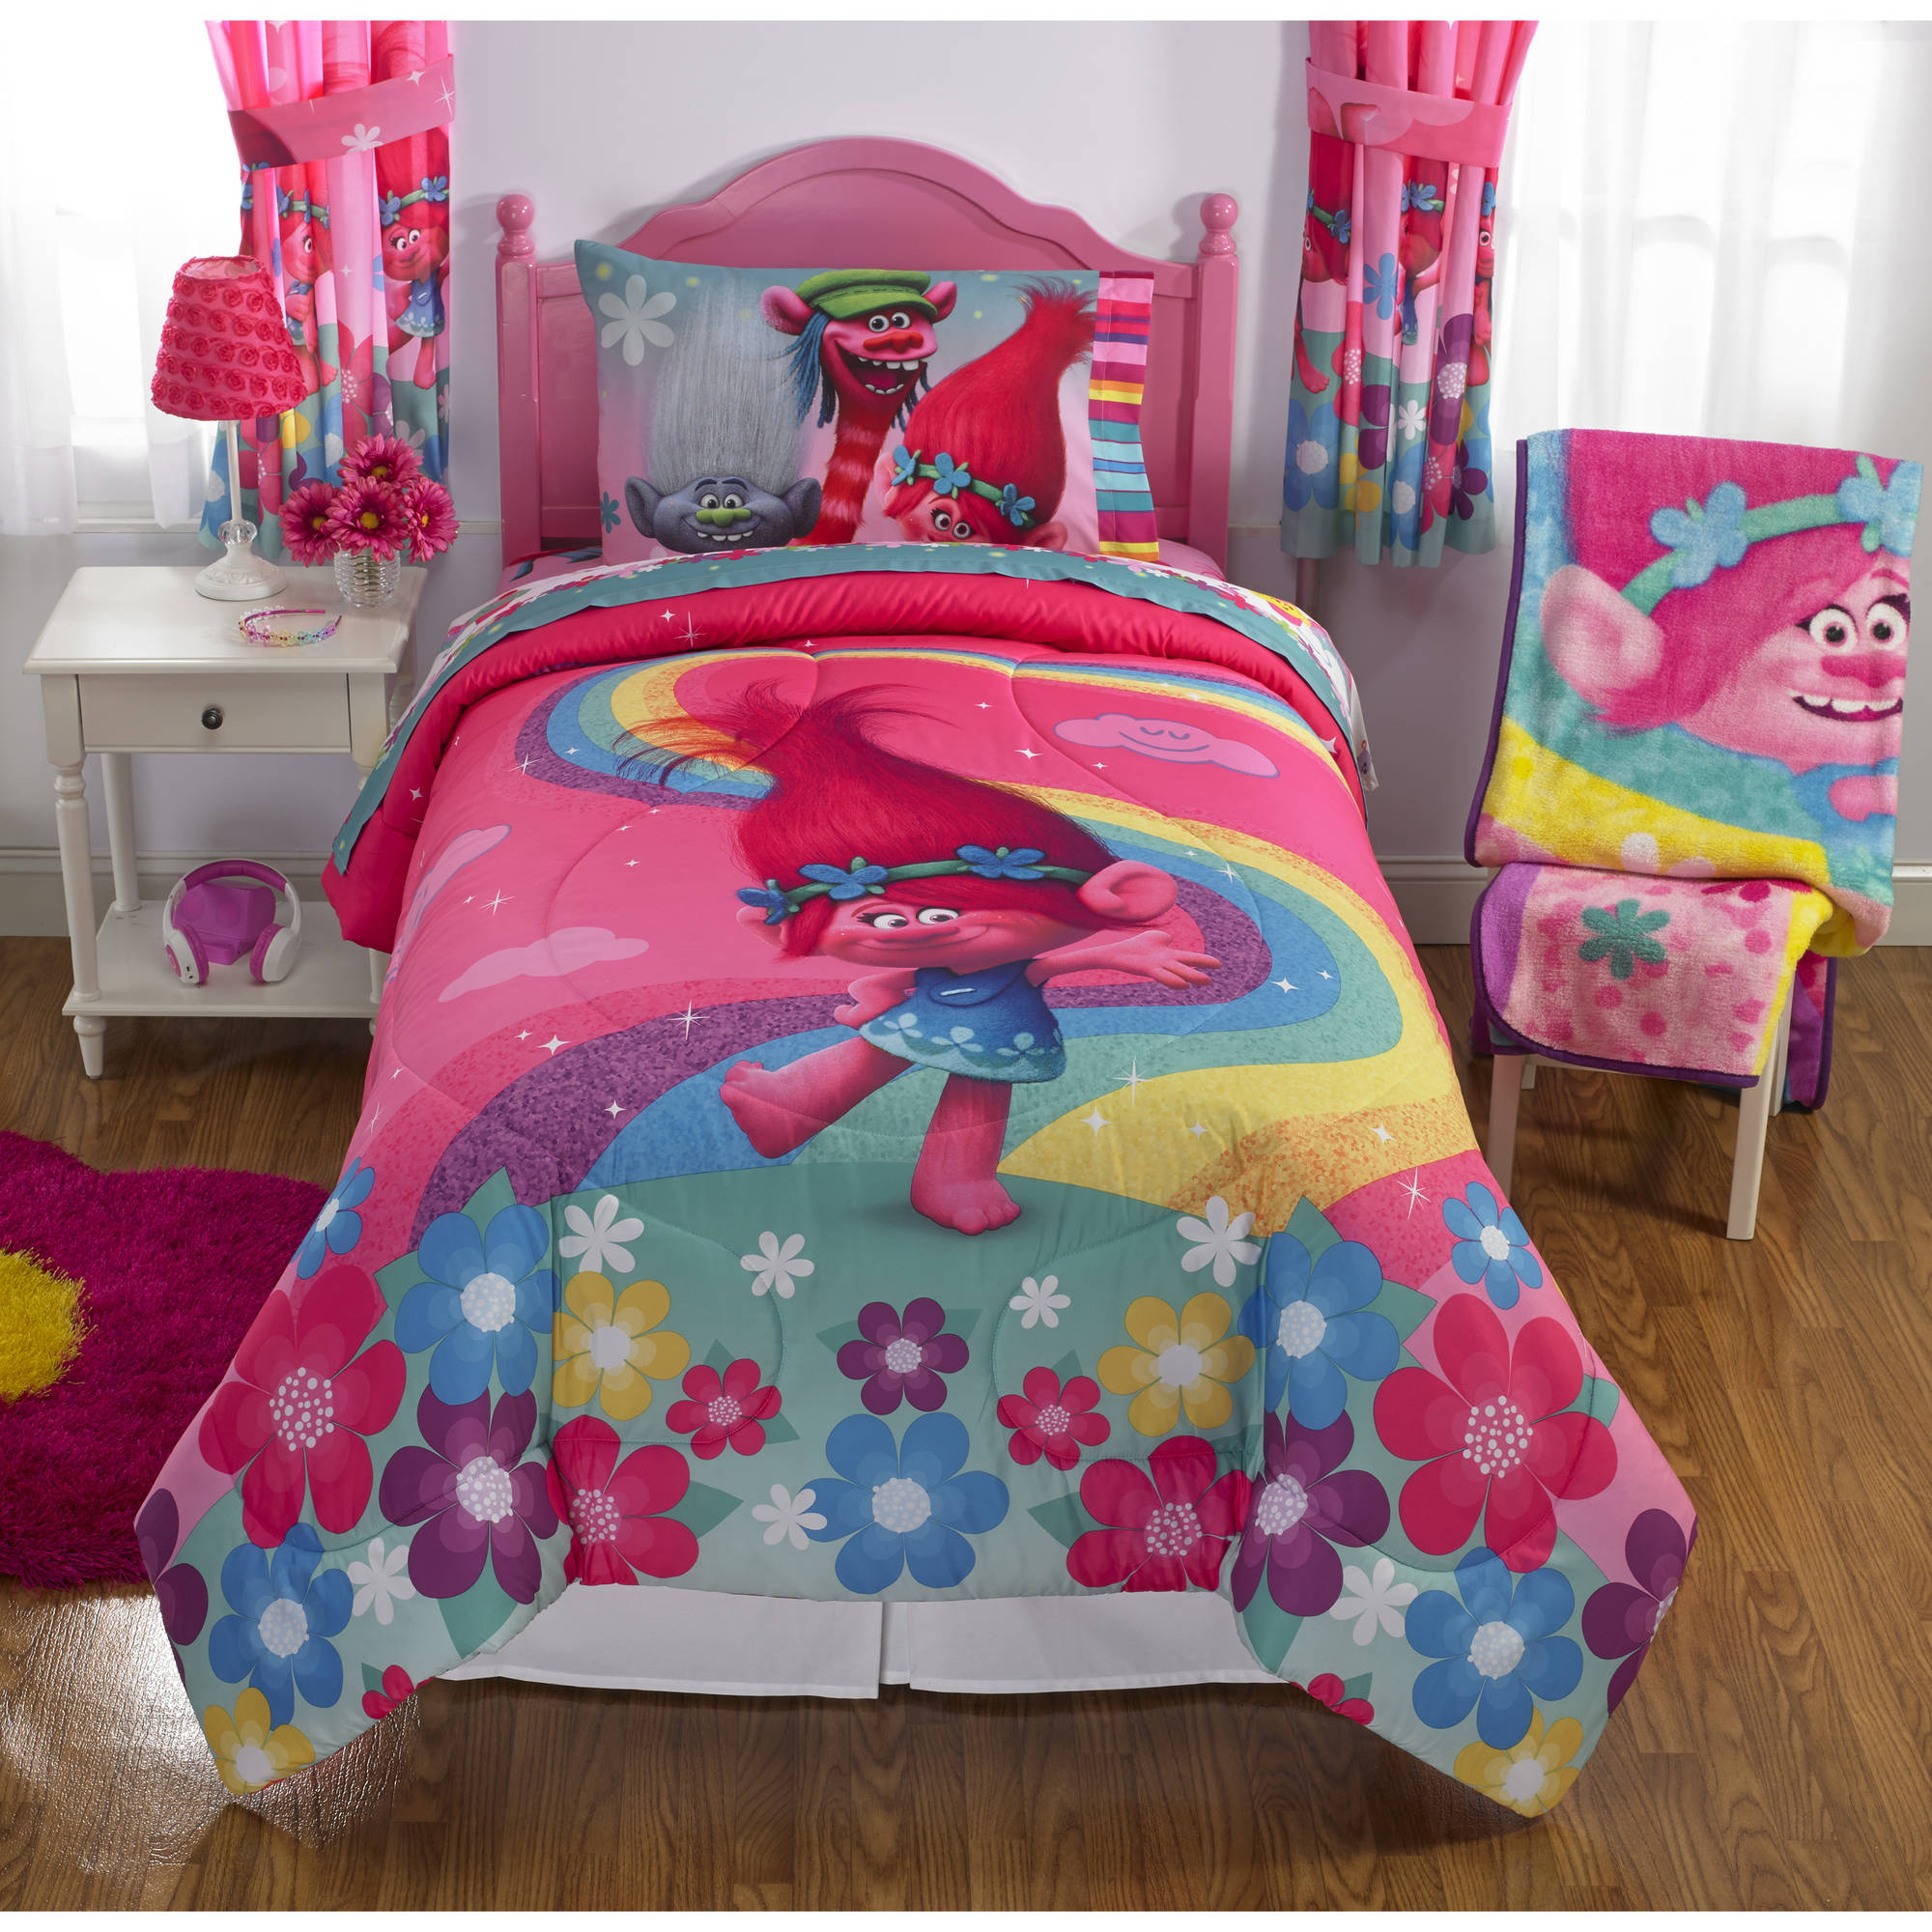 Dreamwork's Trolls Poppy Reversible Twin/Full Bedding